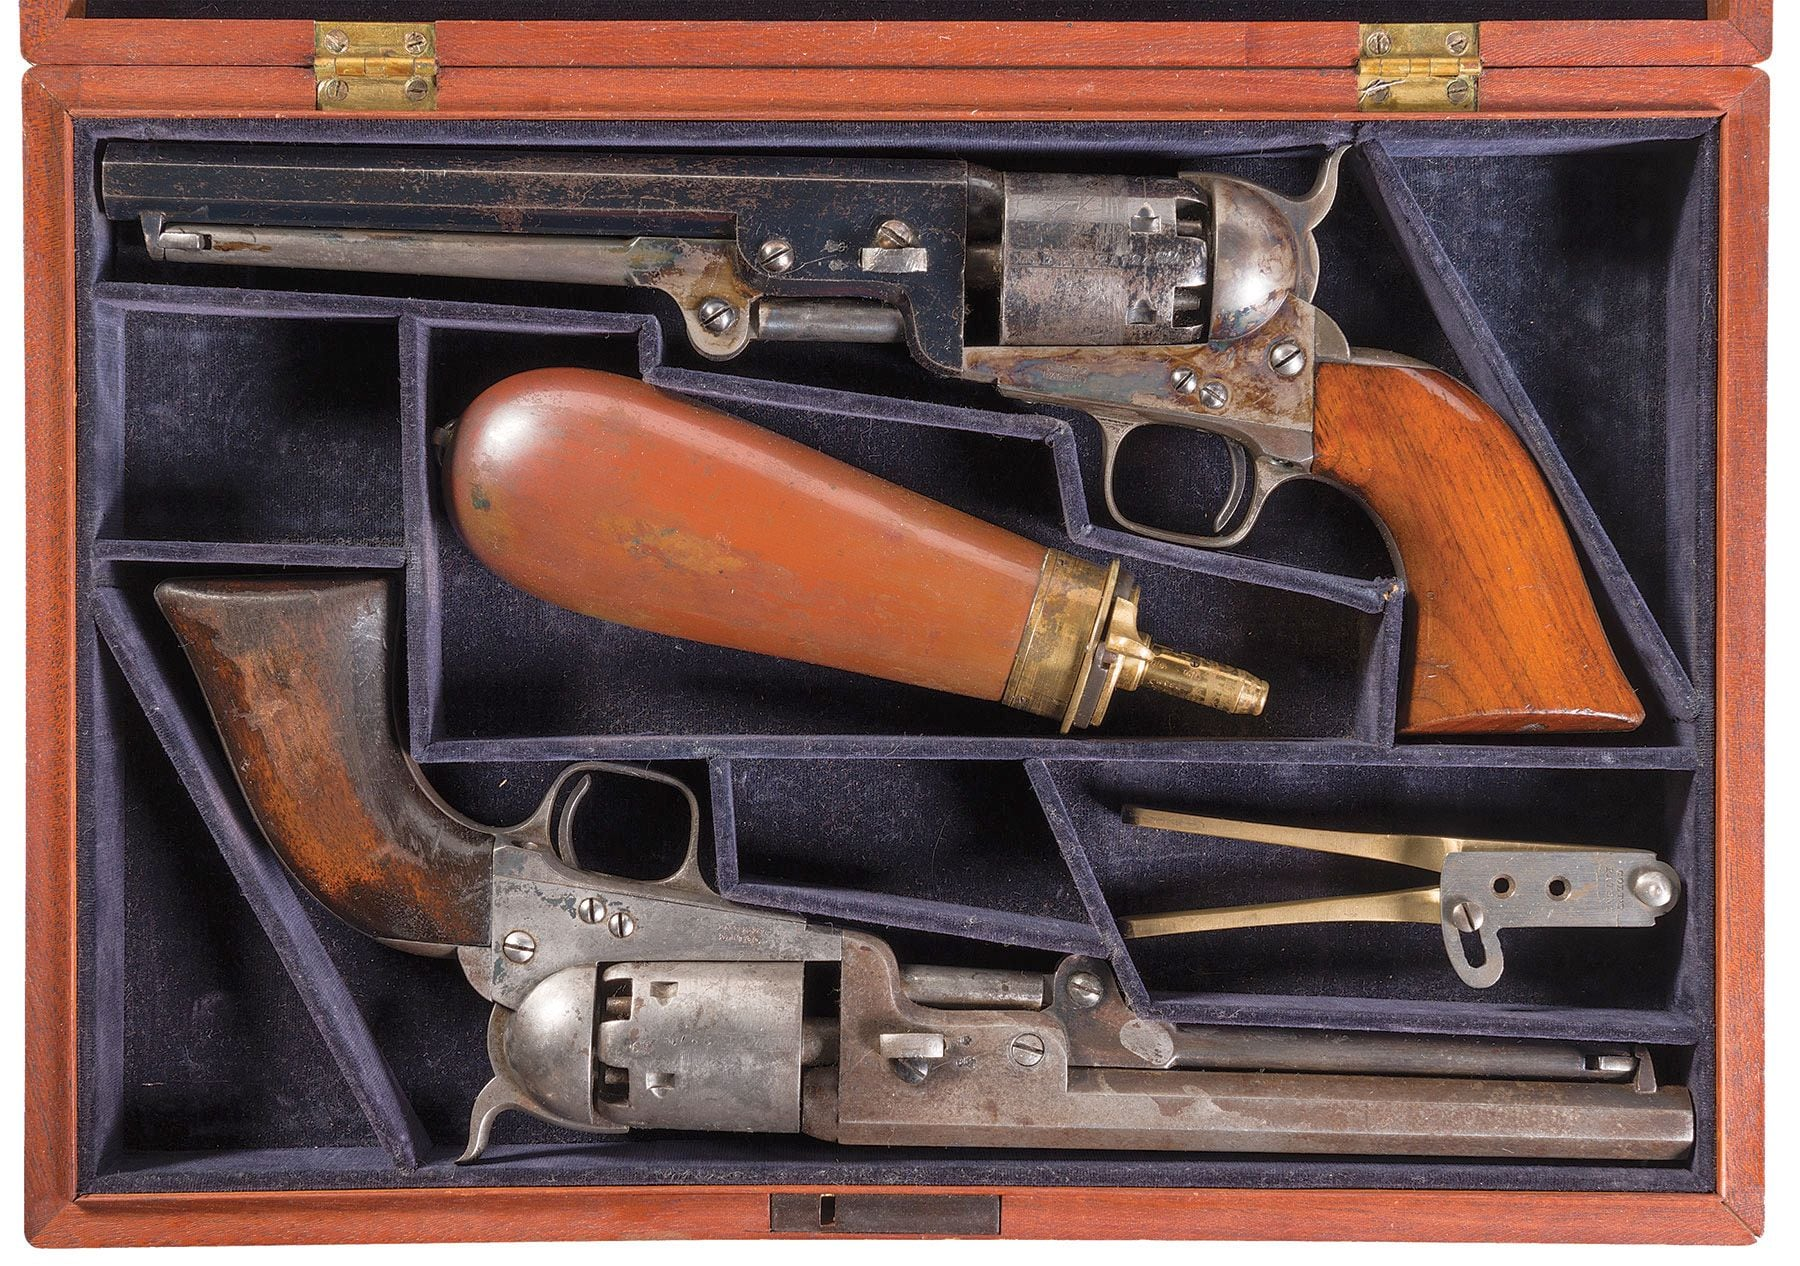 The guns were made in 1855 and one has seen a lot more service than its partner-- though the cylinders were accidentally swapped between the two early on. (Photos: RIA)